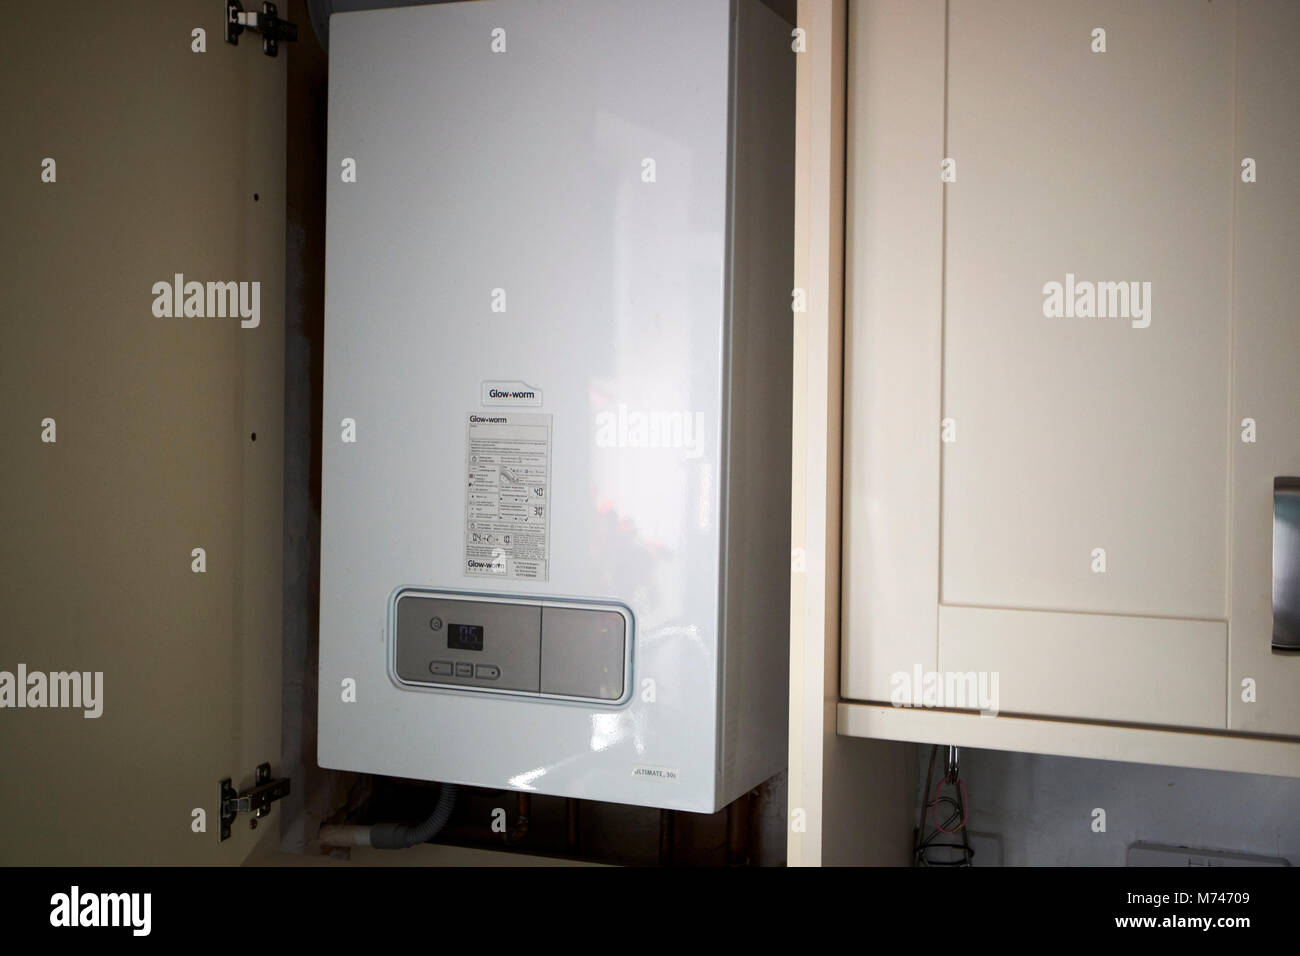 Hot Water Boiler Stockfotos & Hot Water Boiler Bilder - Alamy